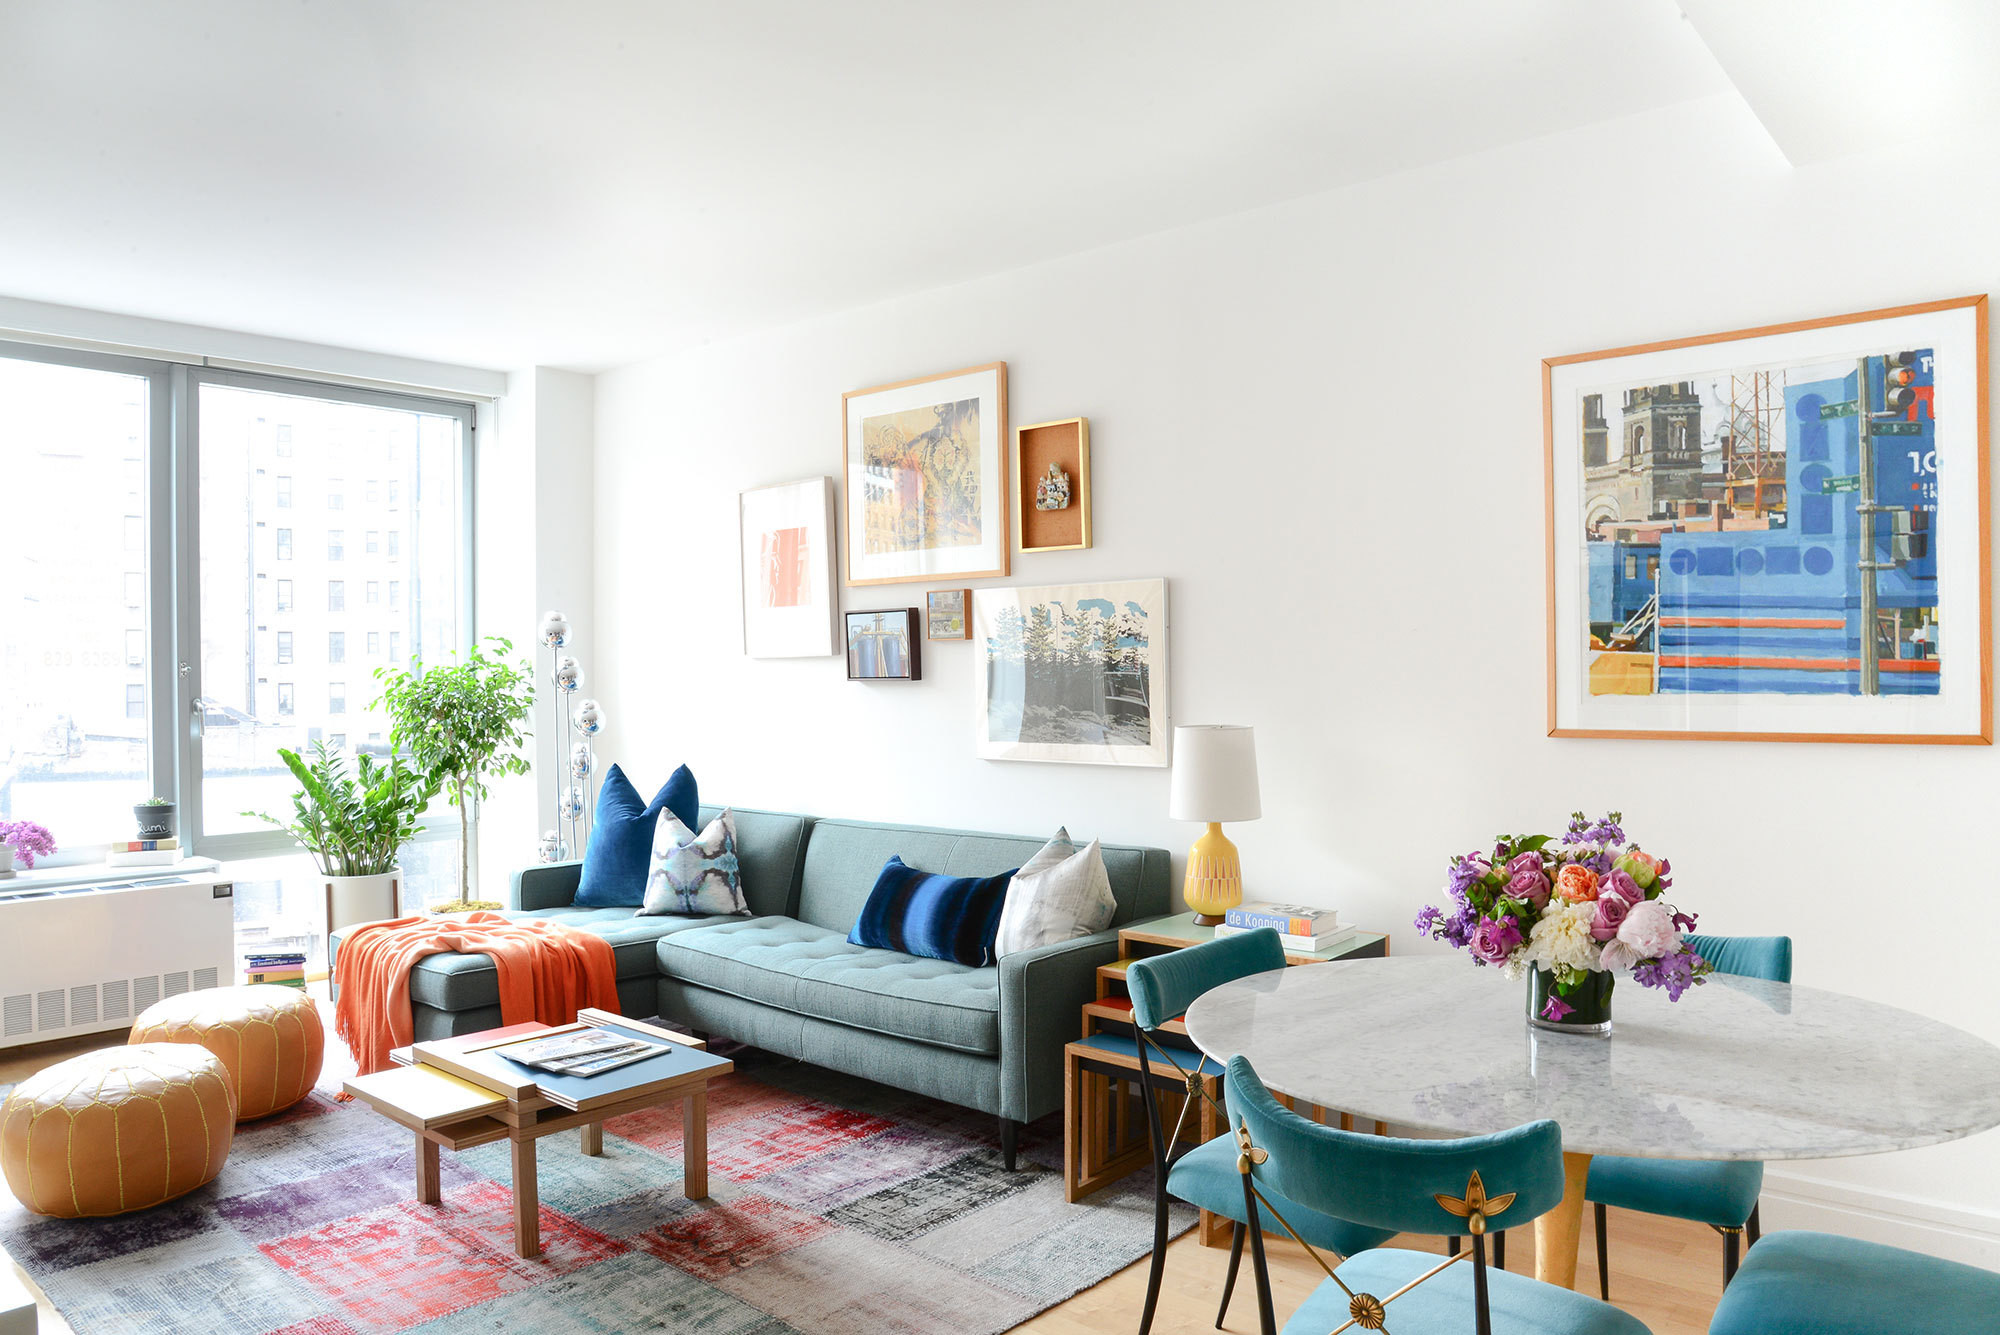 Homepolish Designer Matthew Cane Incorporated Color And Texture In A  Cheerful Second Home In New York